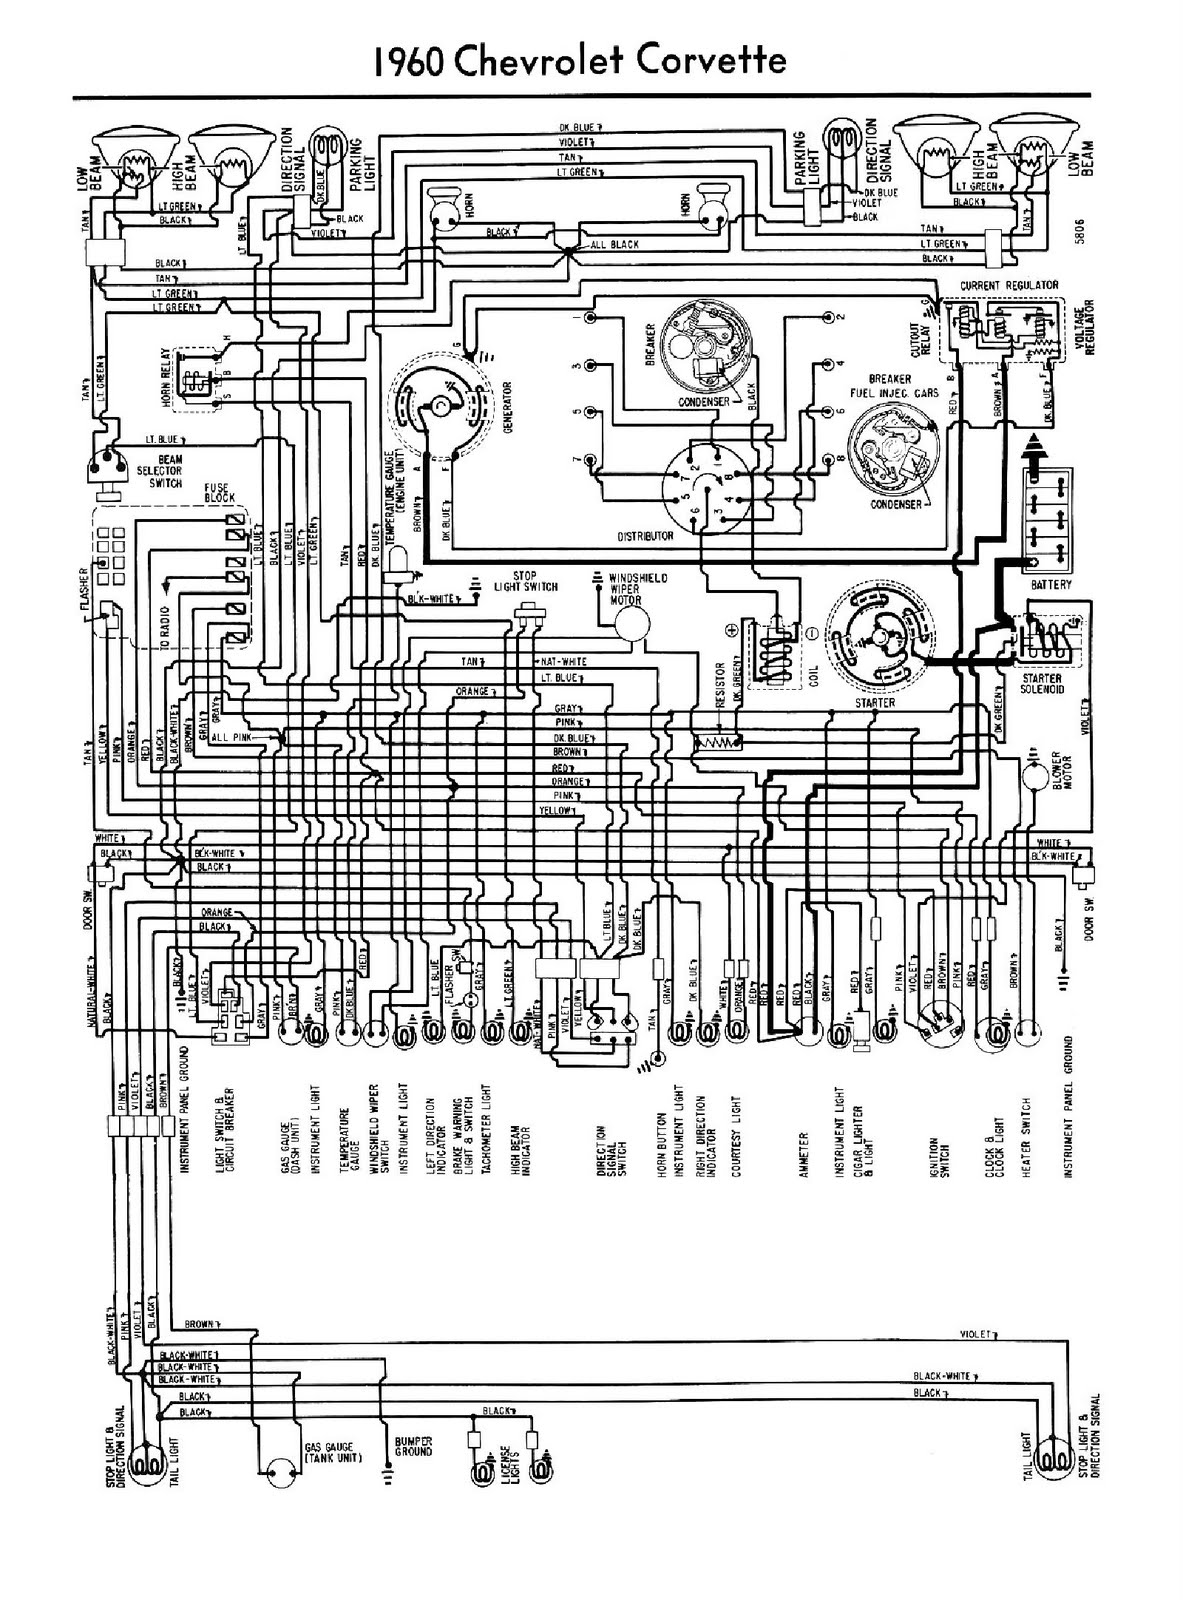 1960_Chevrolet_Corvette_Wiring free auto wiring diagram 1960 chevrolet corvette wiring diagram corvette wiring diagram at gsmportal.co